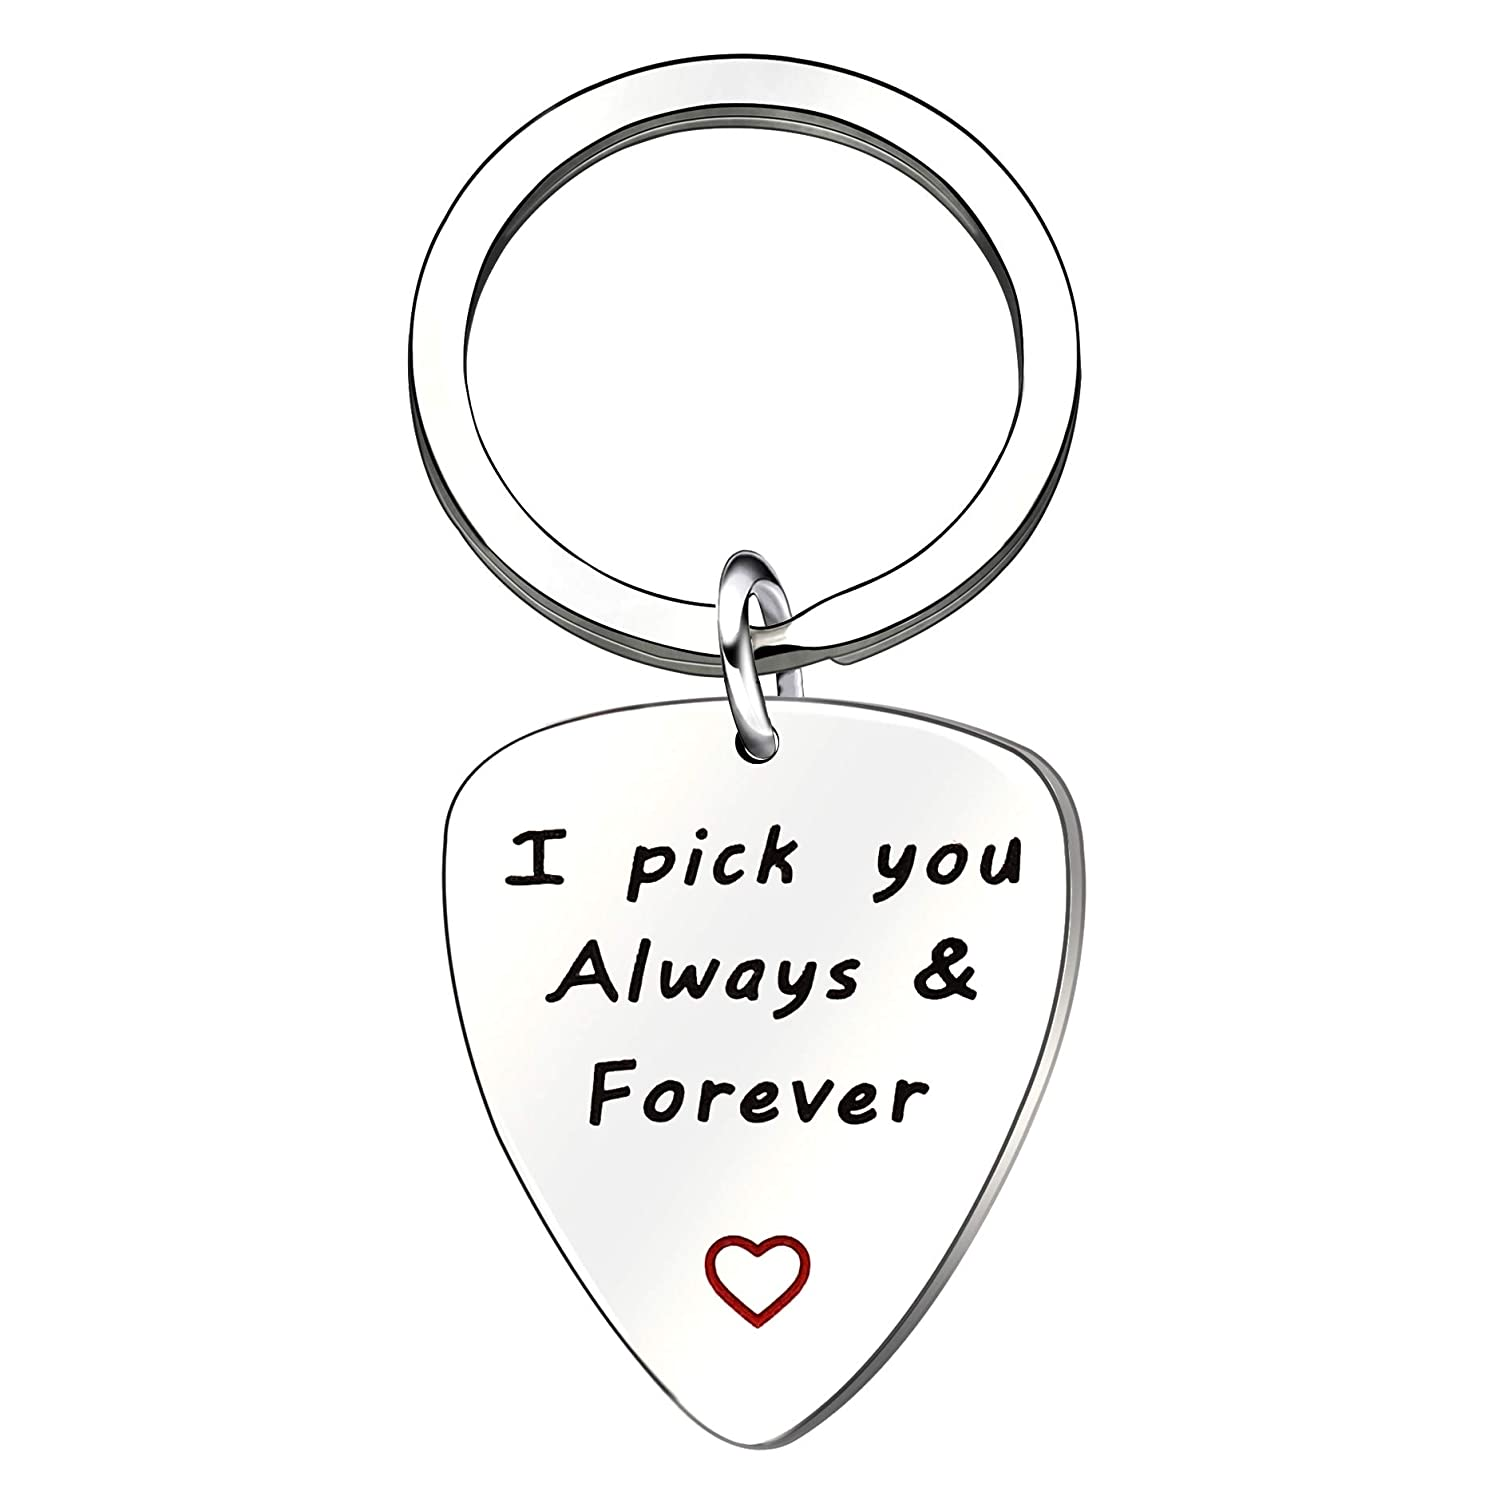 lauhonmin Guitar Pick/Key Chain I'd Pick You Every Time Stainless Steel - Musician Guitarist Husband Boyfriend Gift (Pick you always & forever)